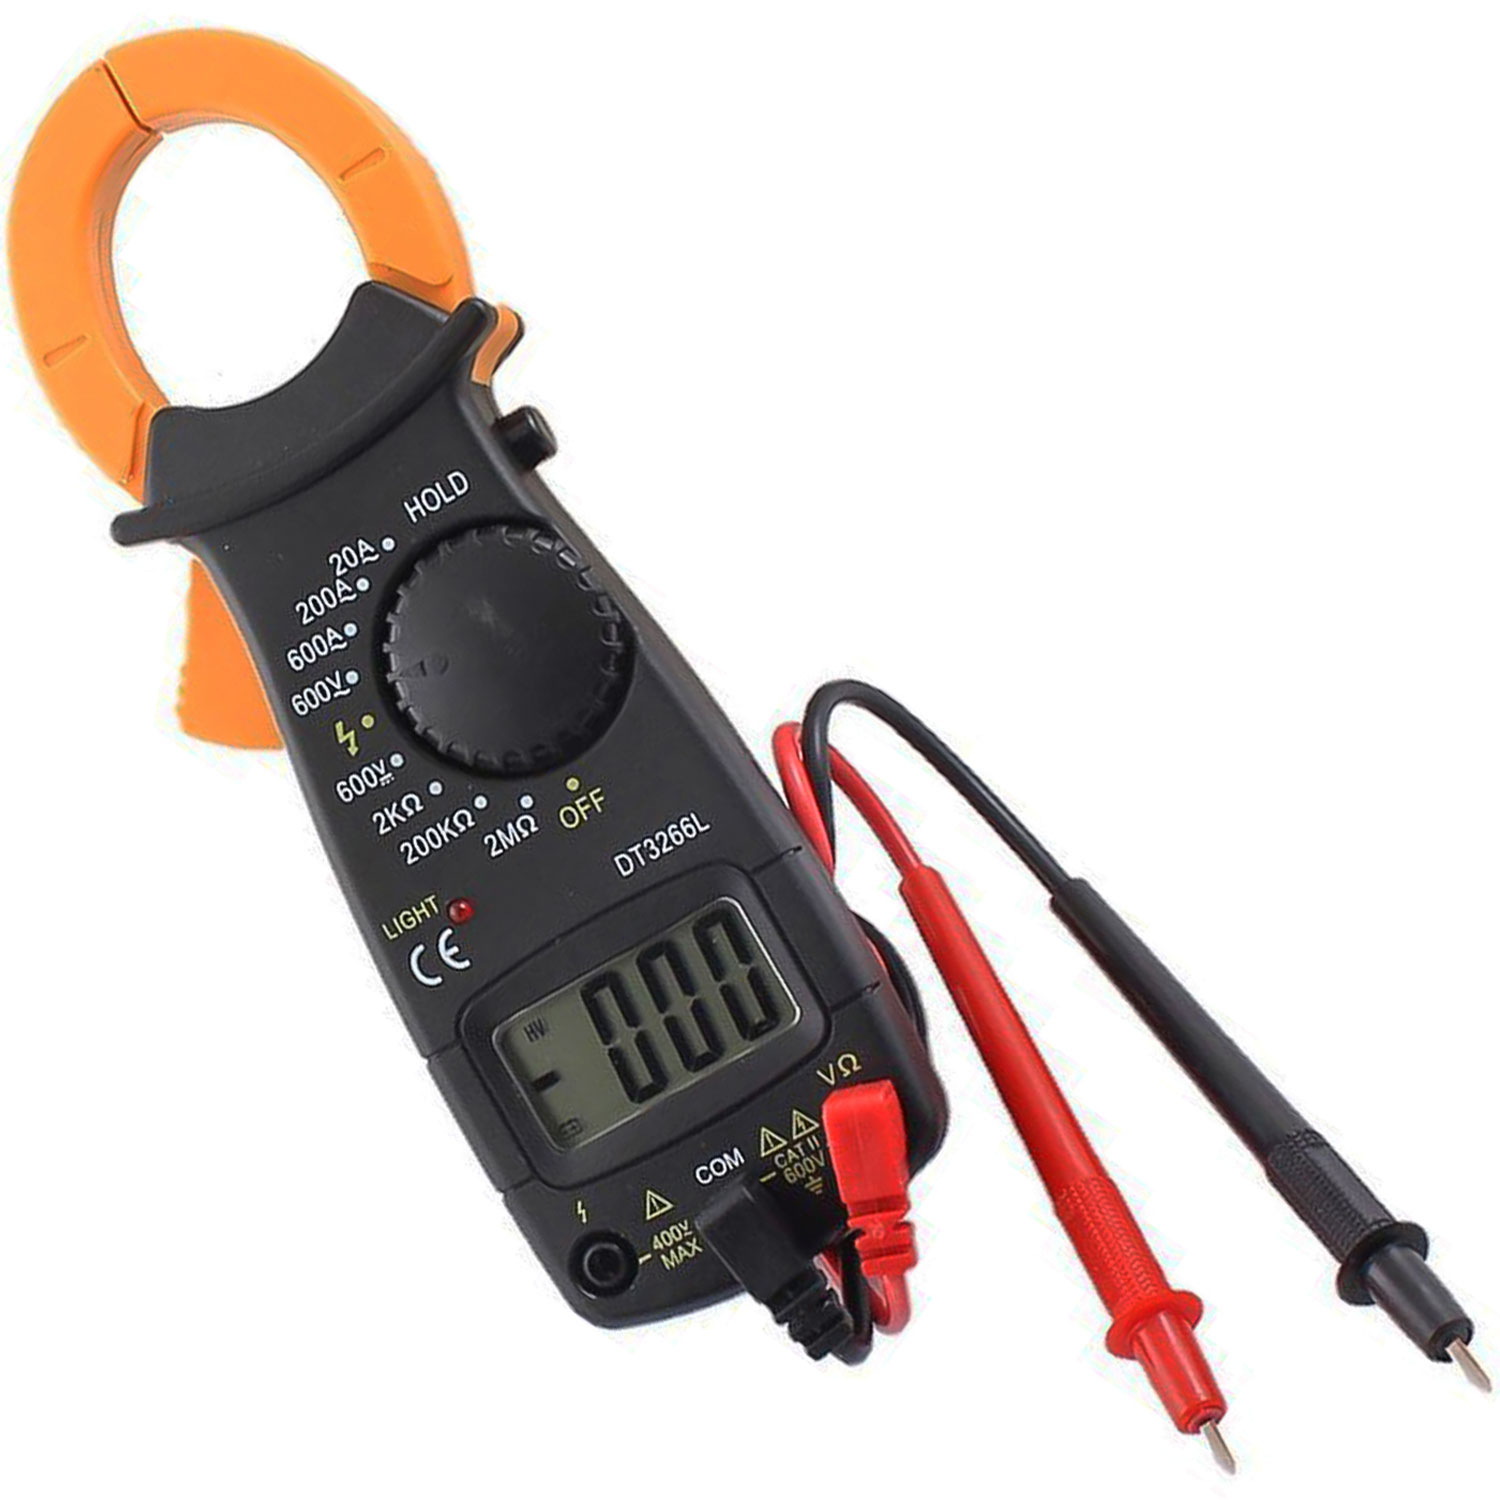 Trendbox Digital LCD Automatic AC DC Electronic Tester Portable Handheld Clamp Volt Meter... by Trendbox